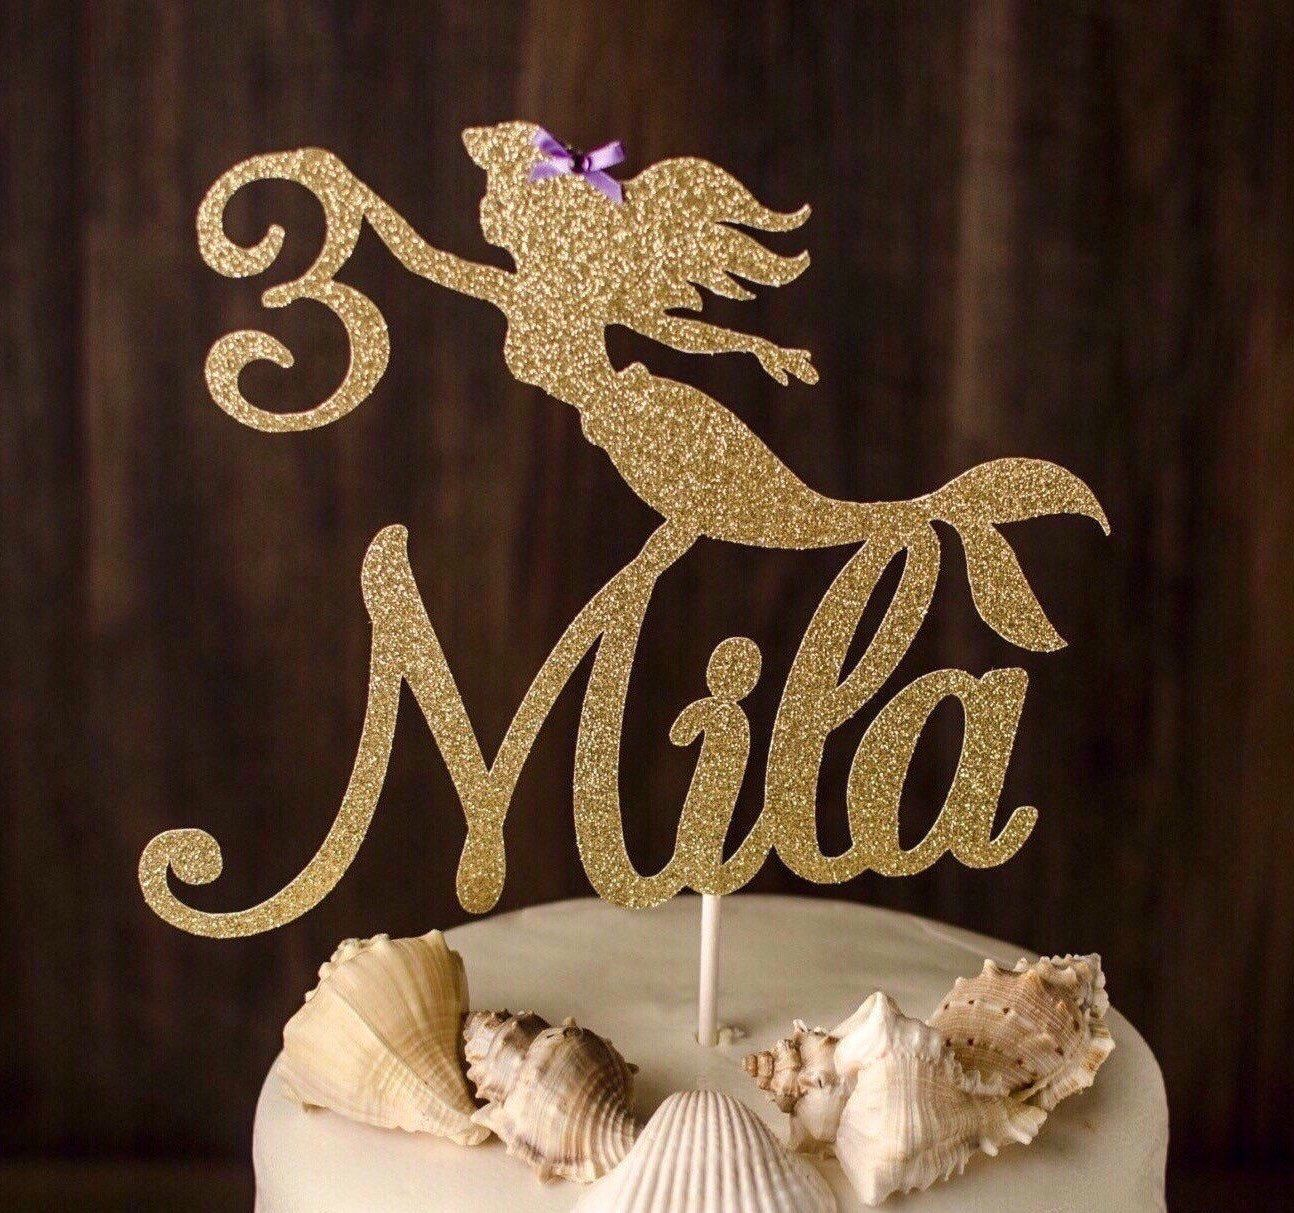 Any name and age cake topper mermaid cake topper under